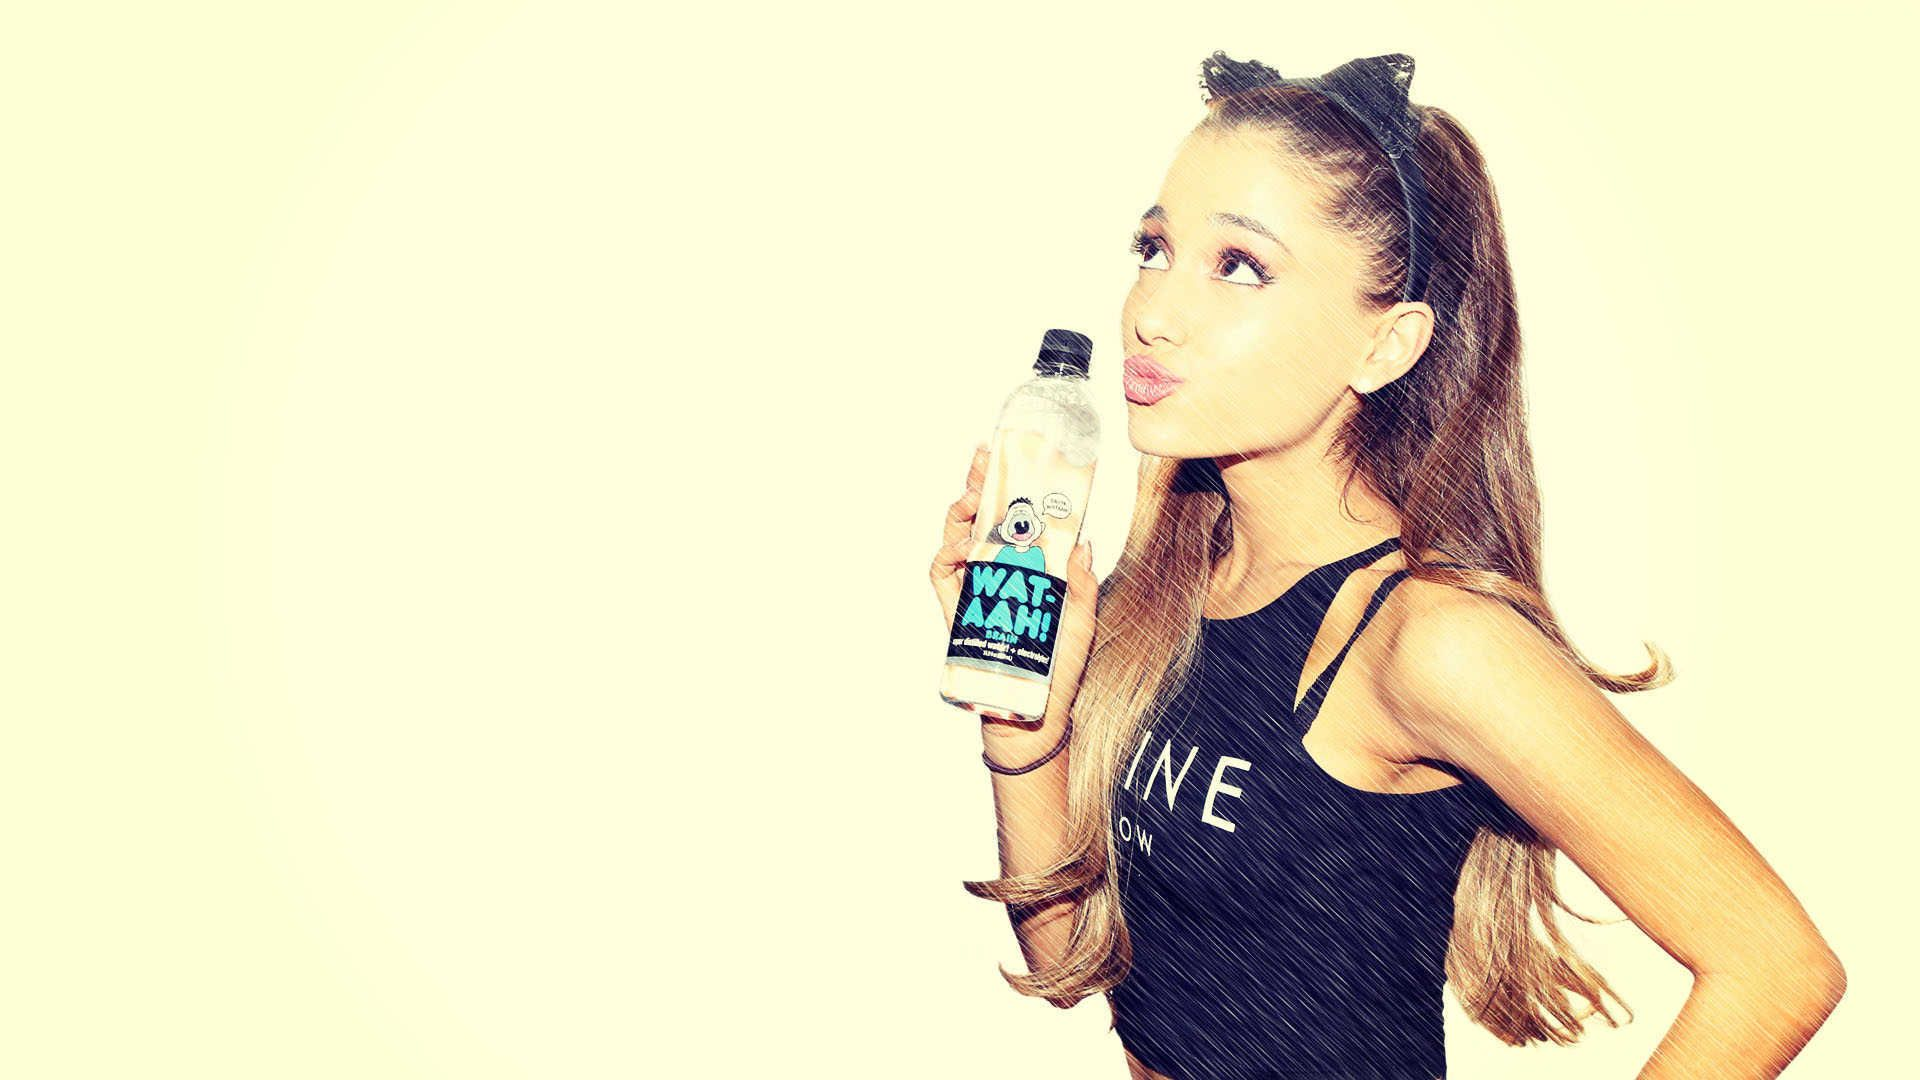 Images of Ariana Grande Concert Wallpapers - #SC